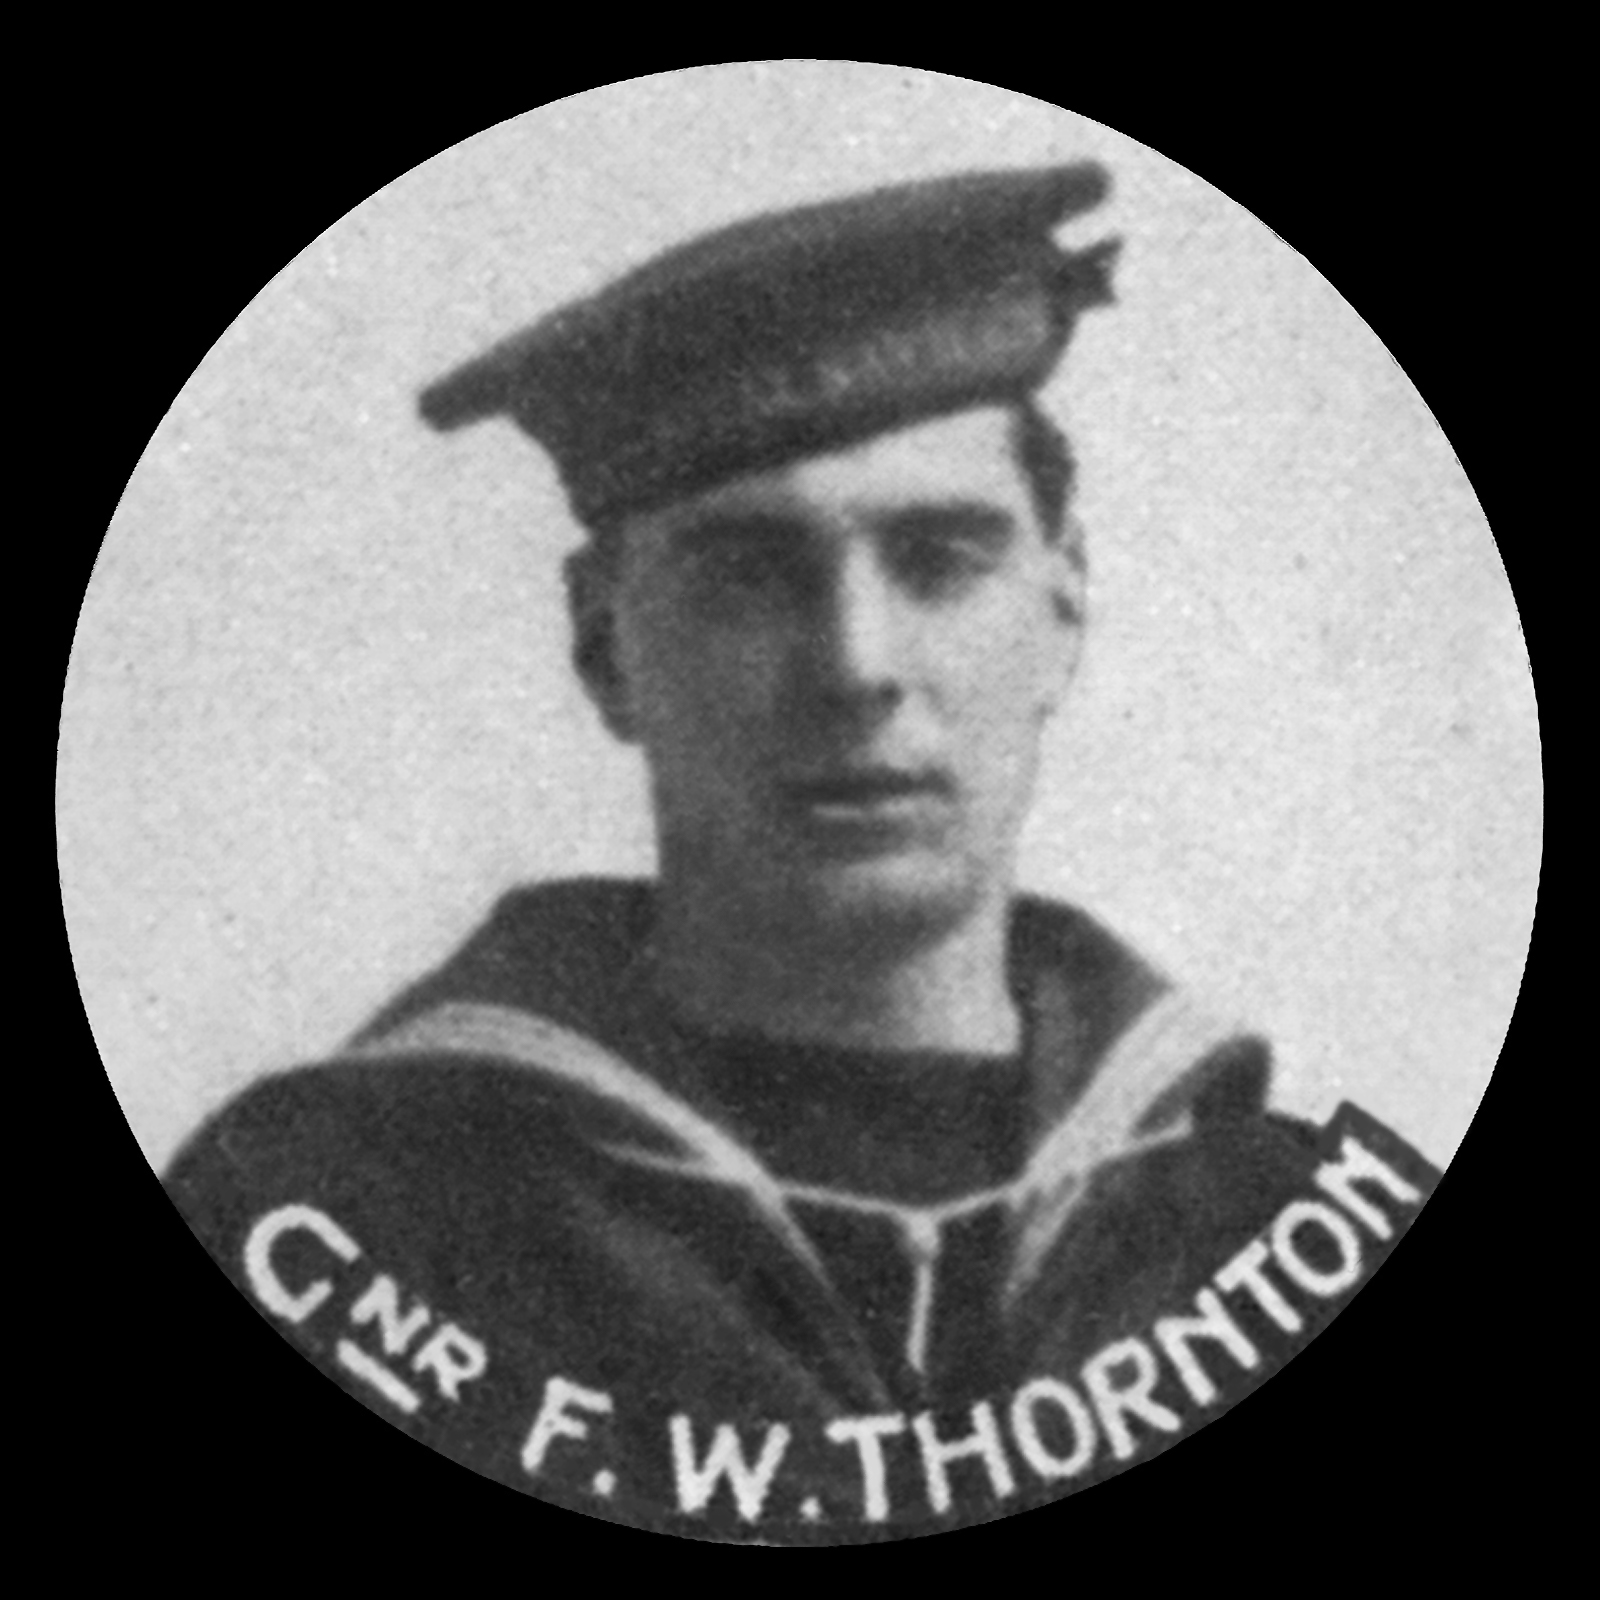 THORNTON Frederick William